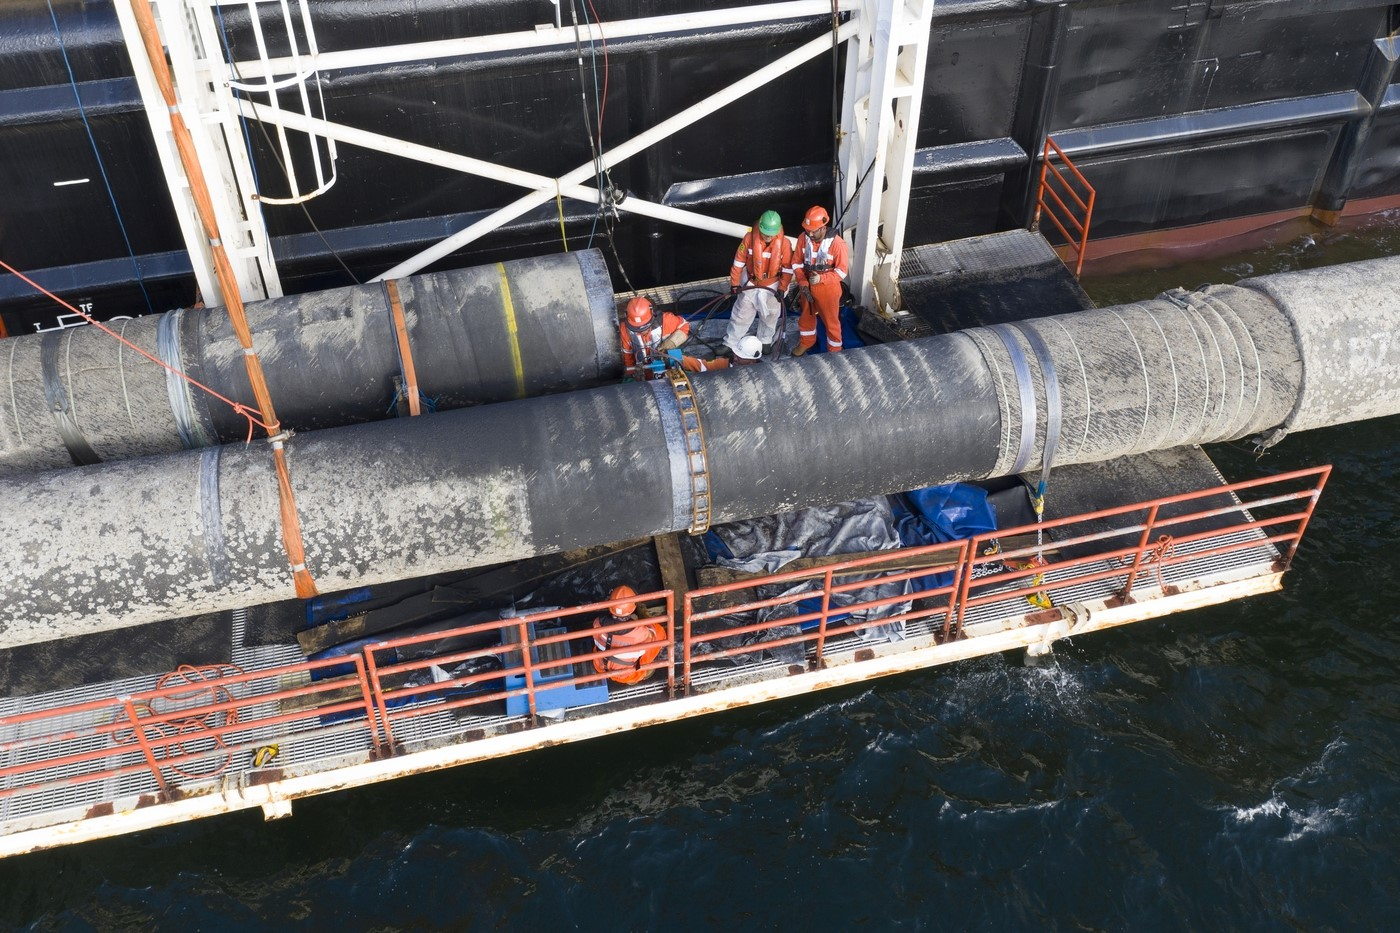 Cracked U.S. Sanctions Leave Nord Stream 2 Construction Unharmed